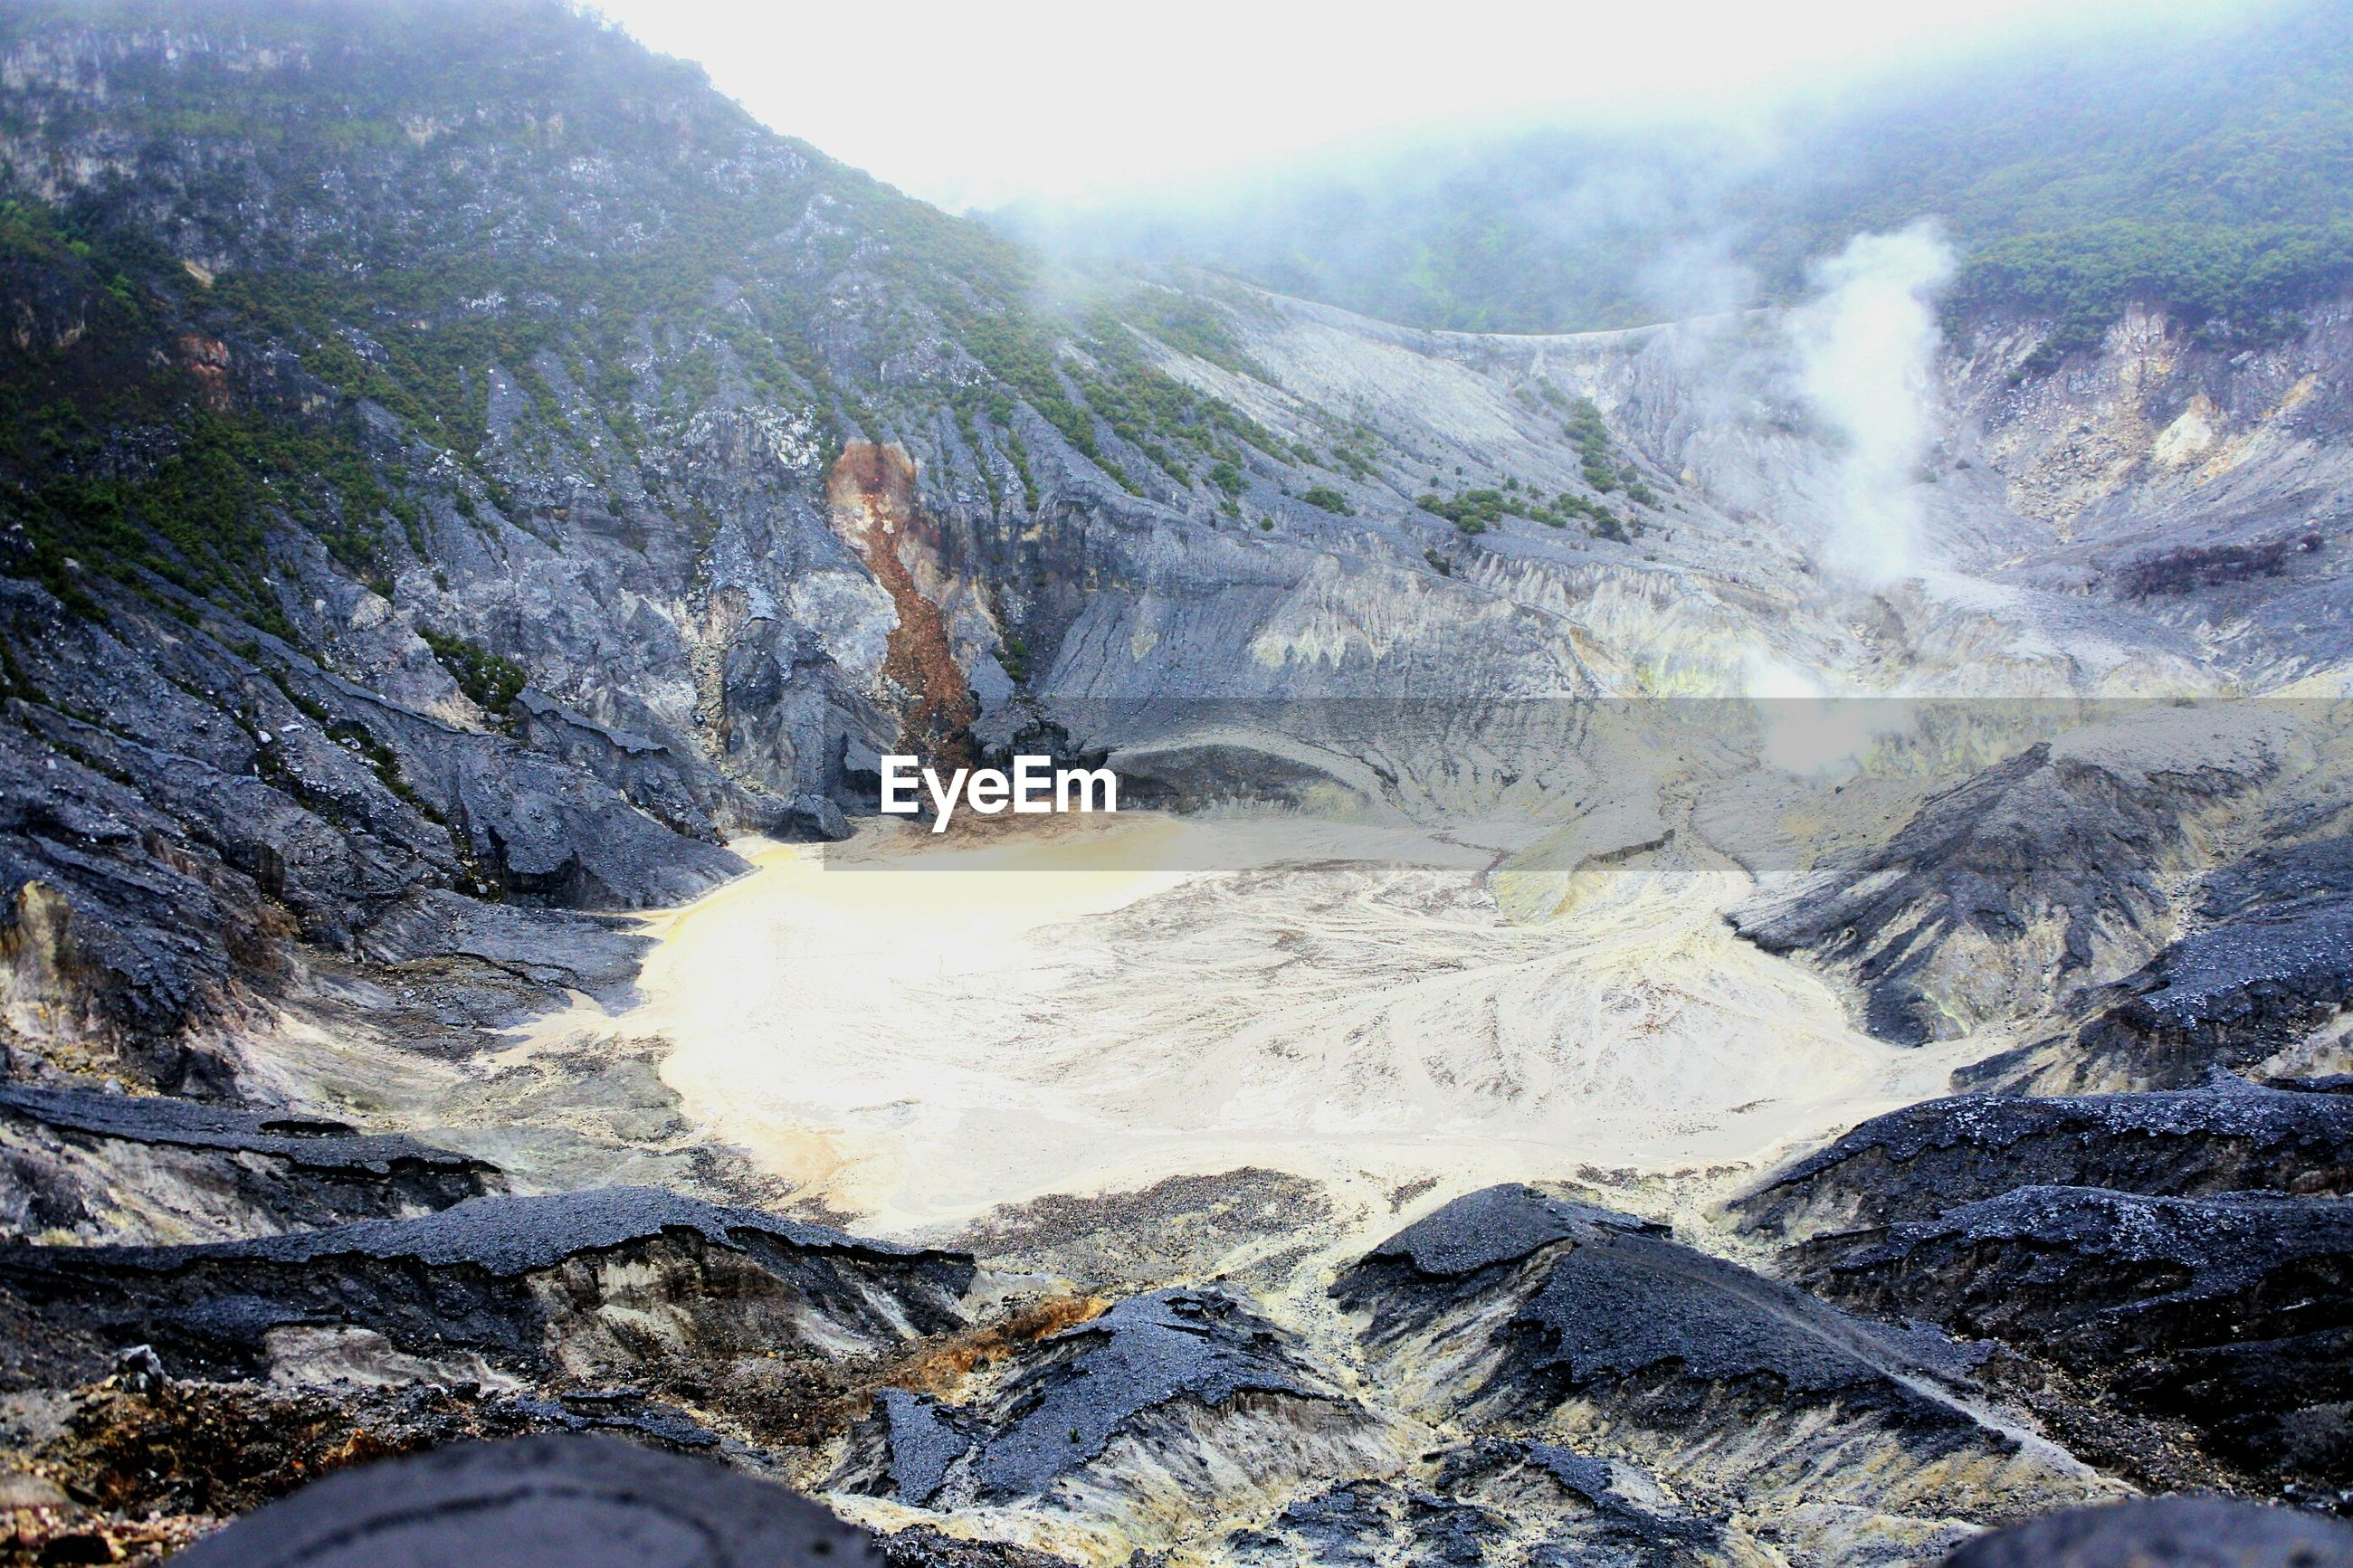 nature, mountain, outdoors, day, scenics, beauty in nature, landscape, physical geography, tranquility, hot spring, volcanic crater, no people, sky, tree, water